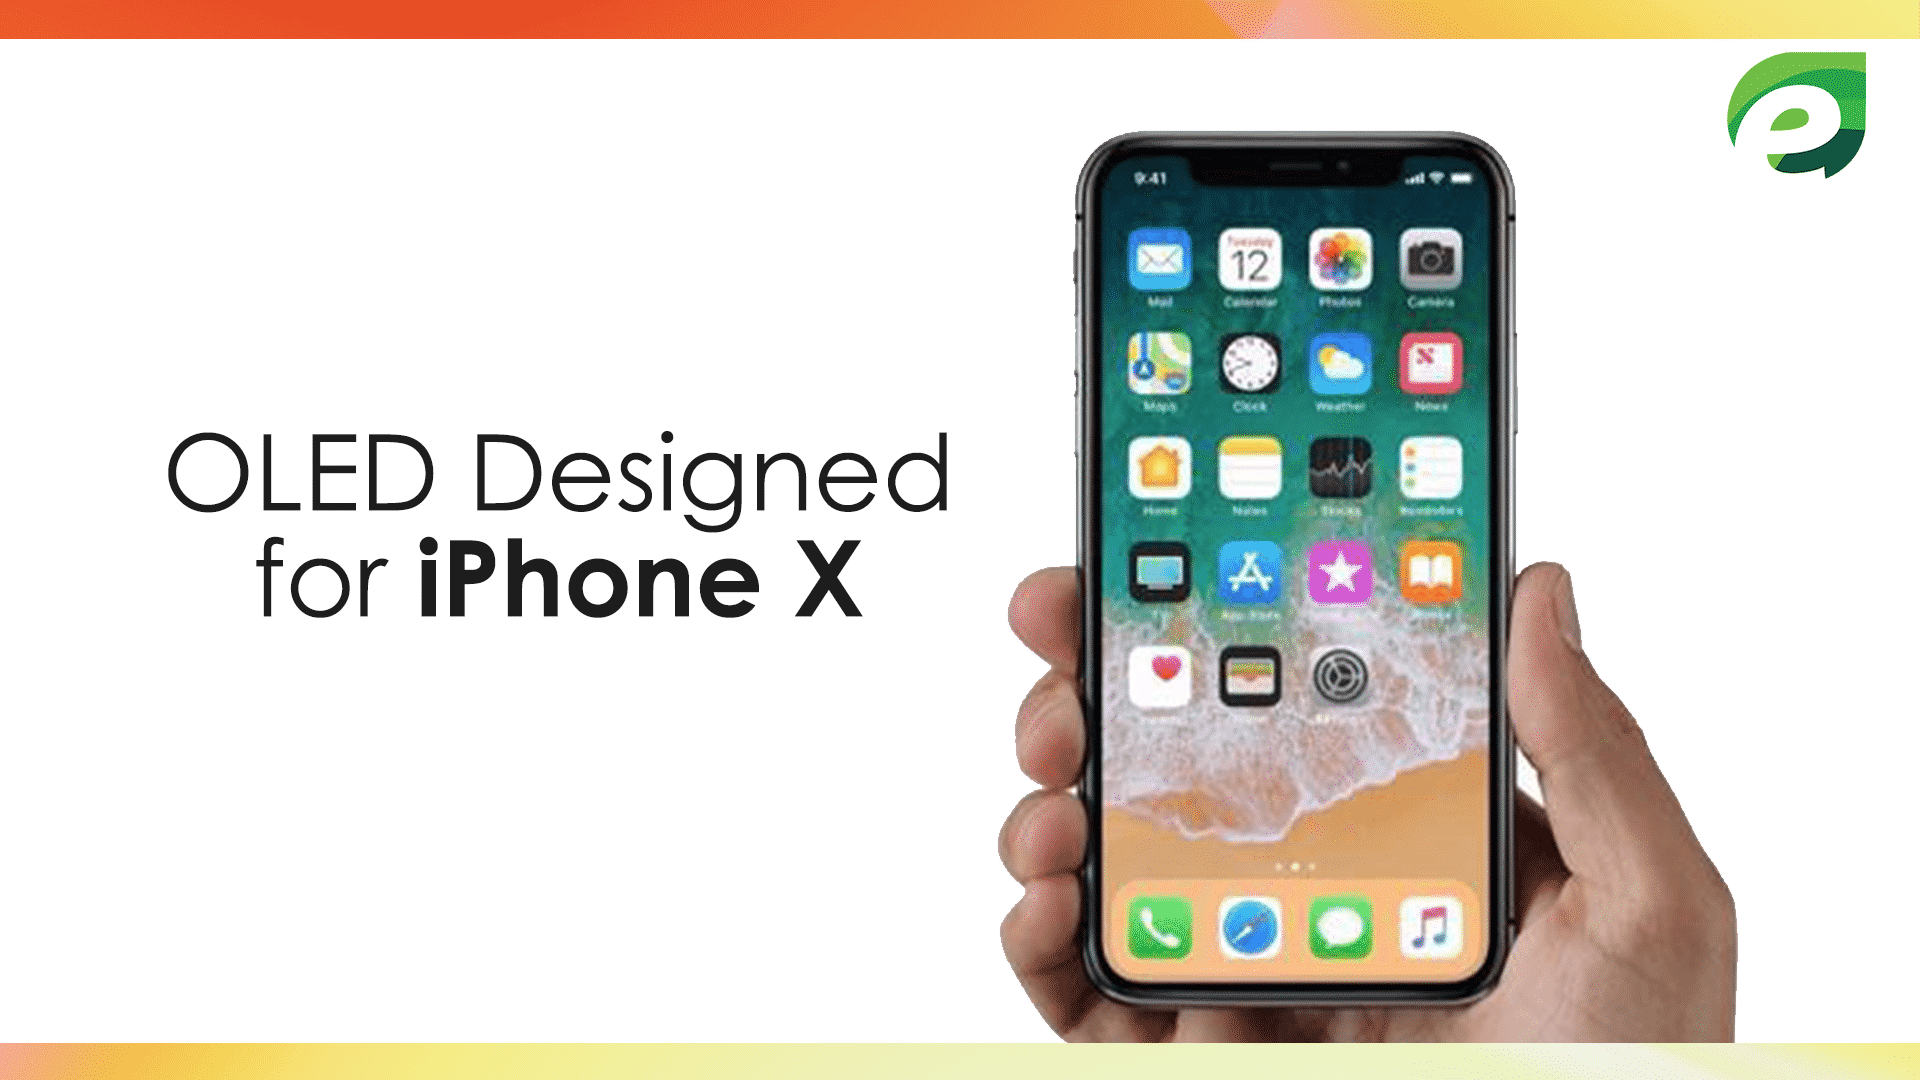 iphone x- oled designed